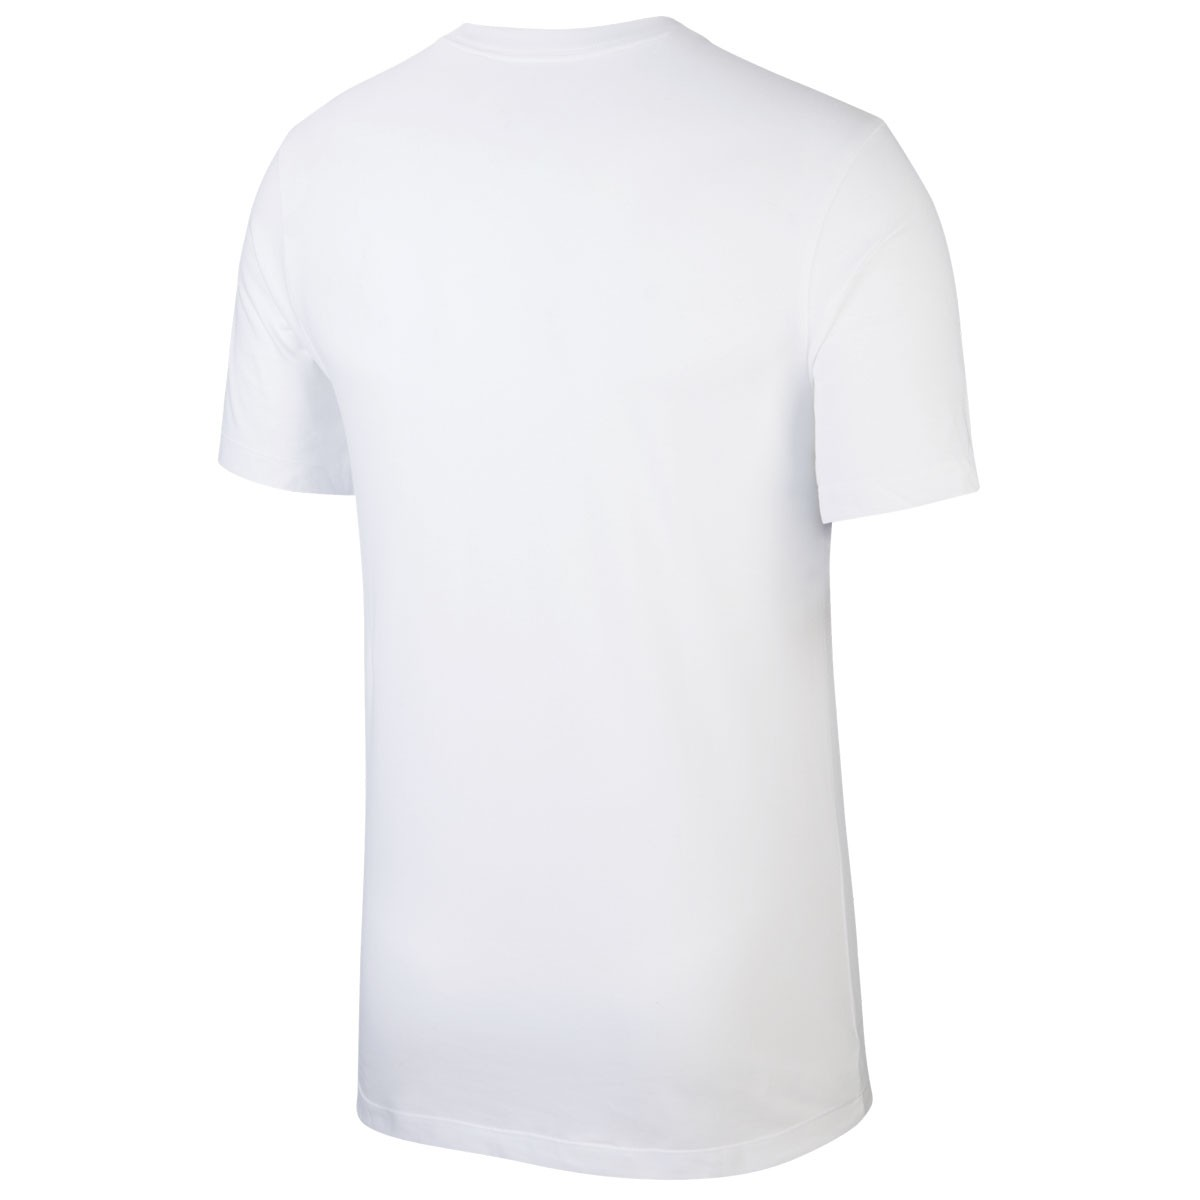 classic fit d73ec 93644 Jordan T-Shirt Streets to Stadiums  White  AT0560-100